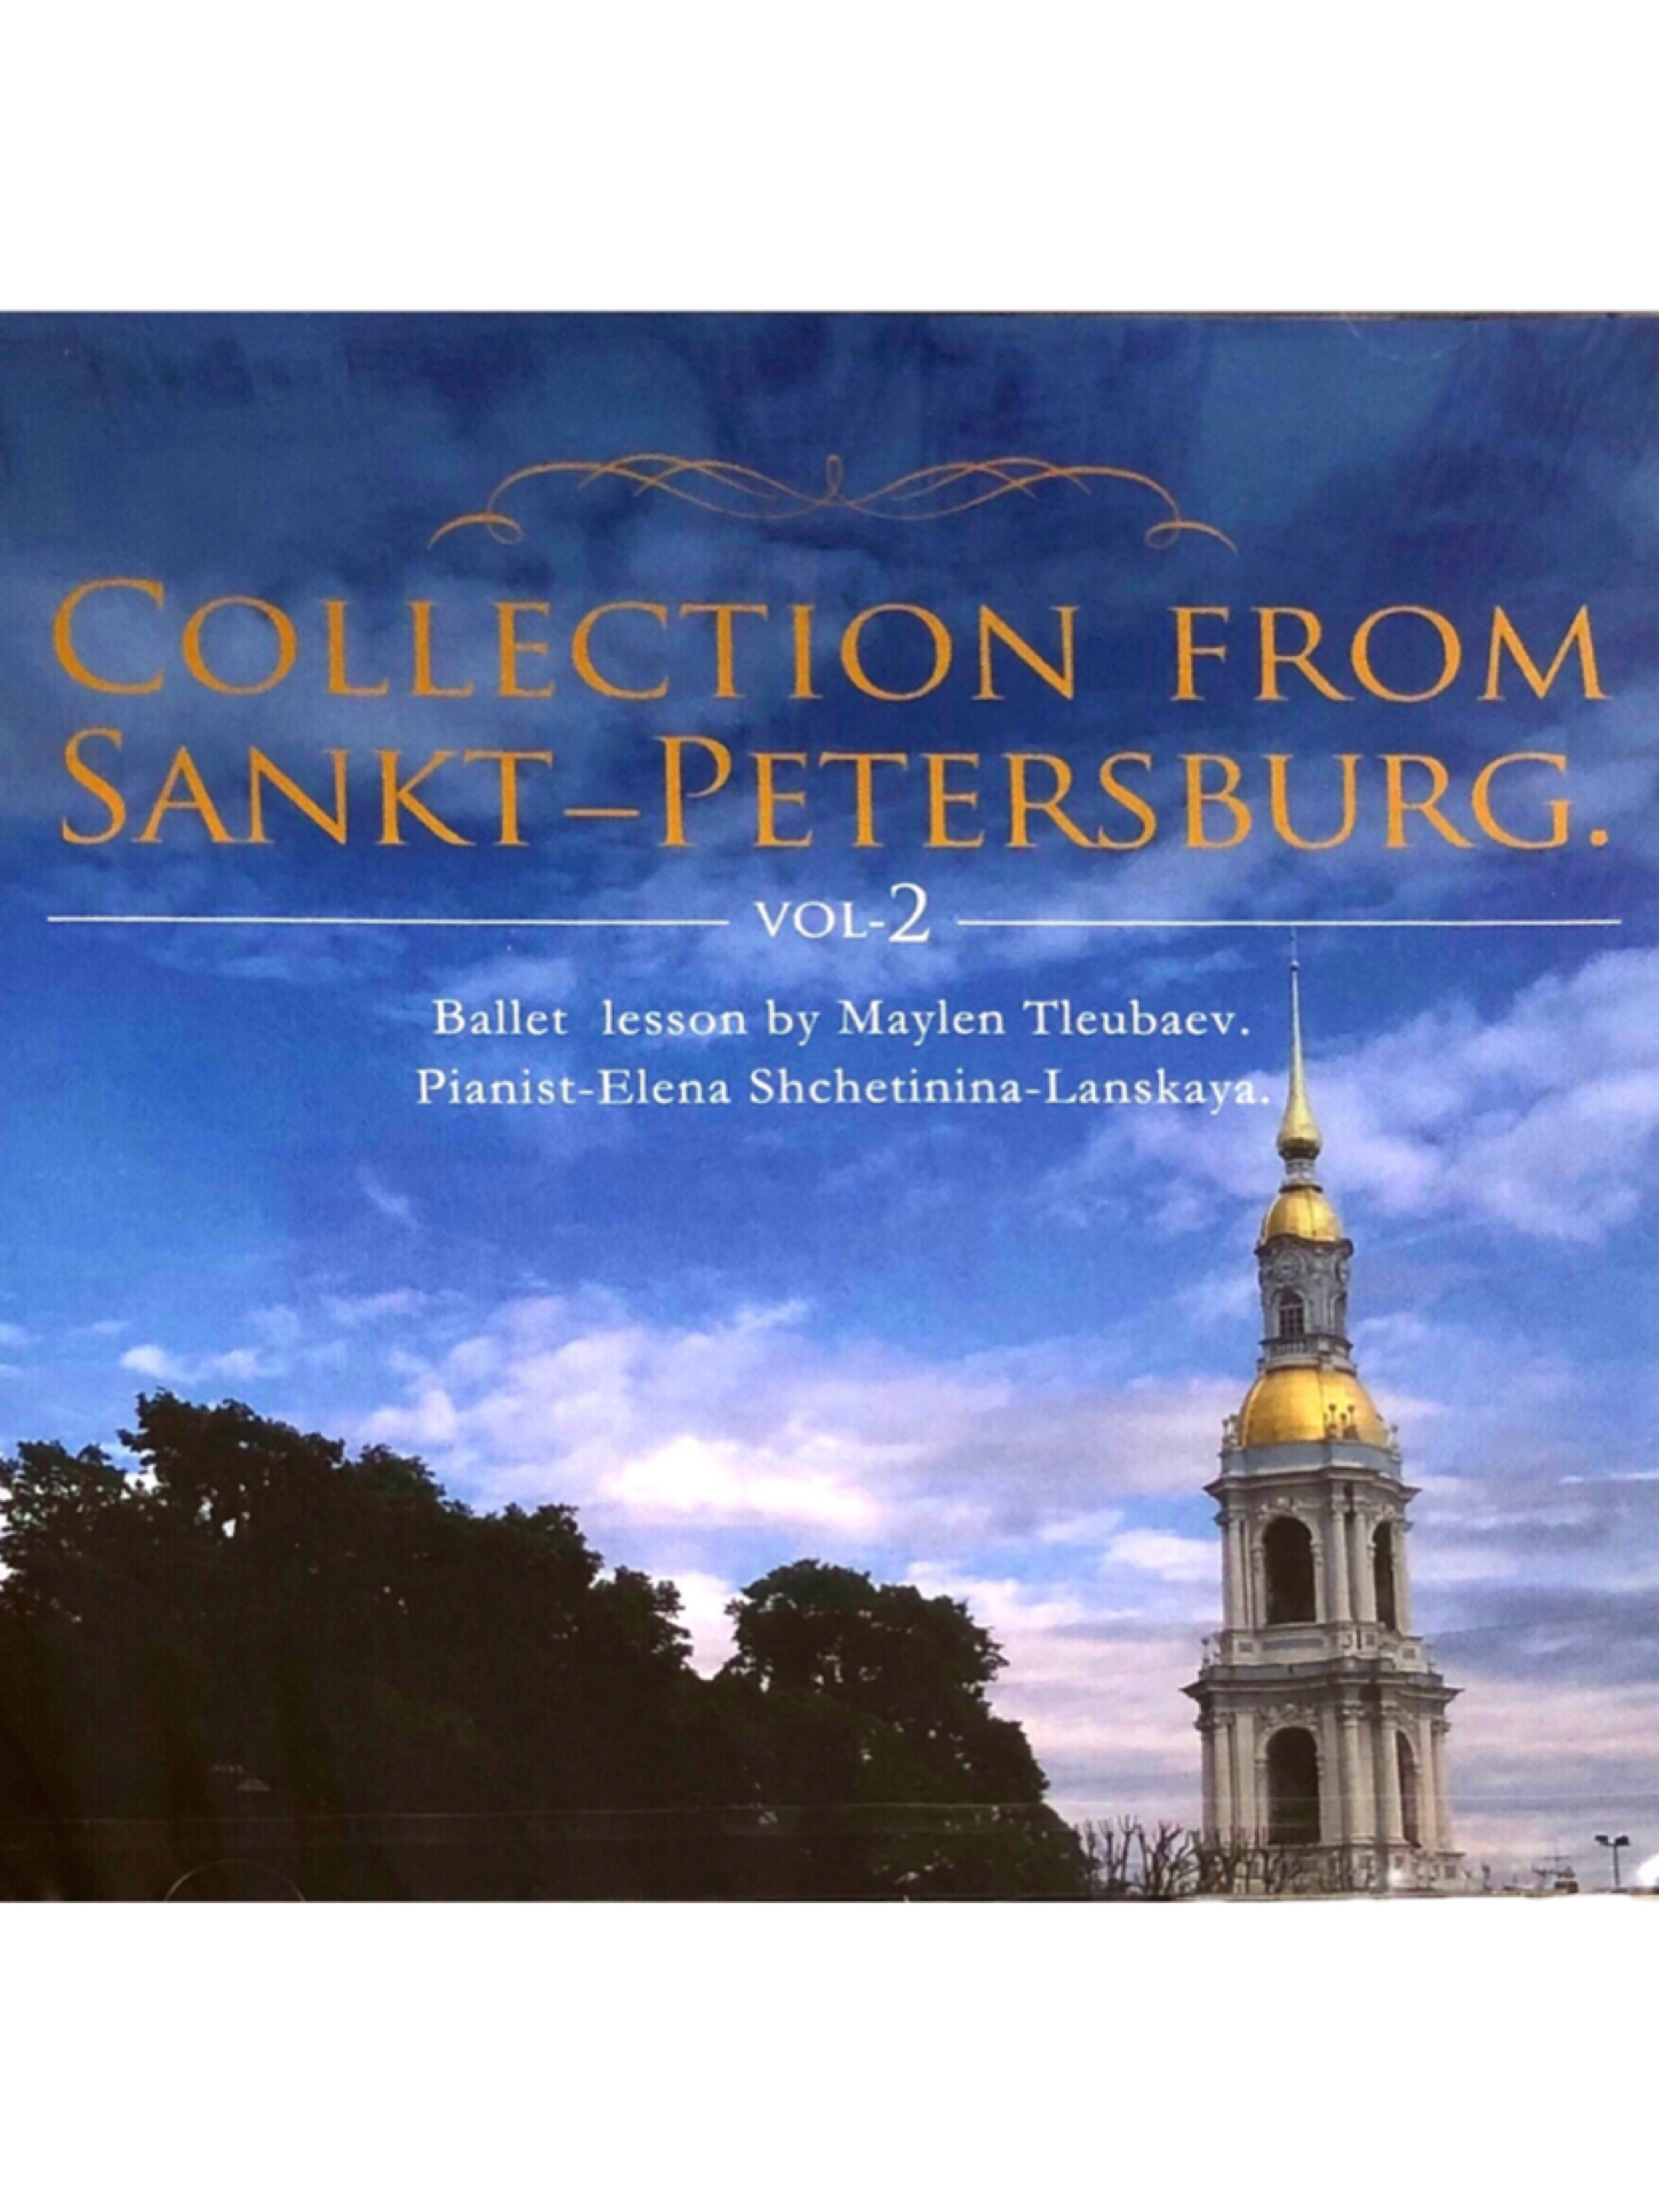 COLLECTION FROM SANKT-PETERSBURG. Vol.2